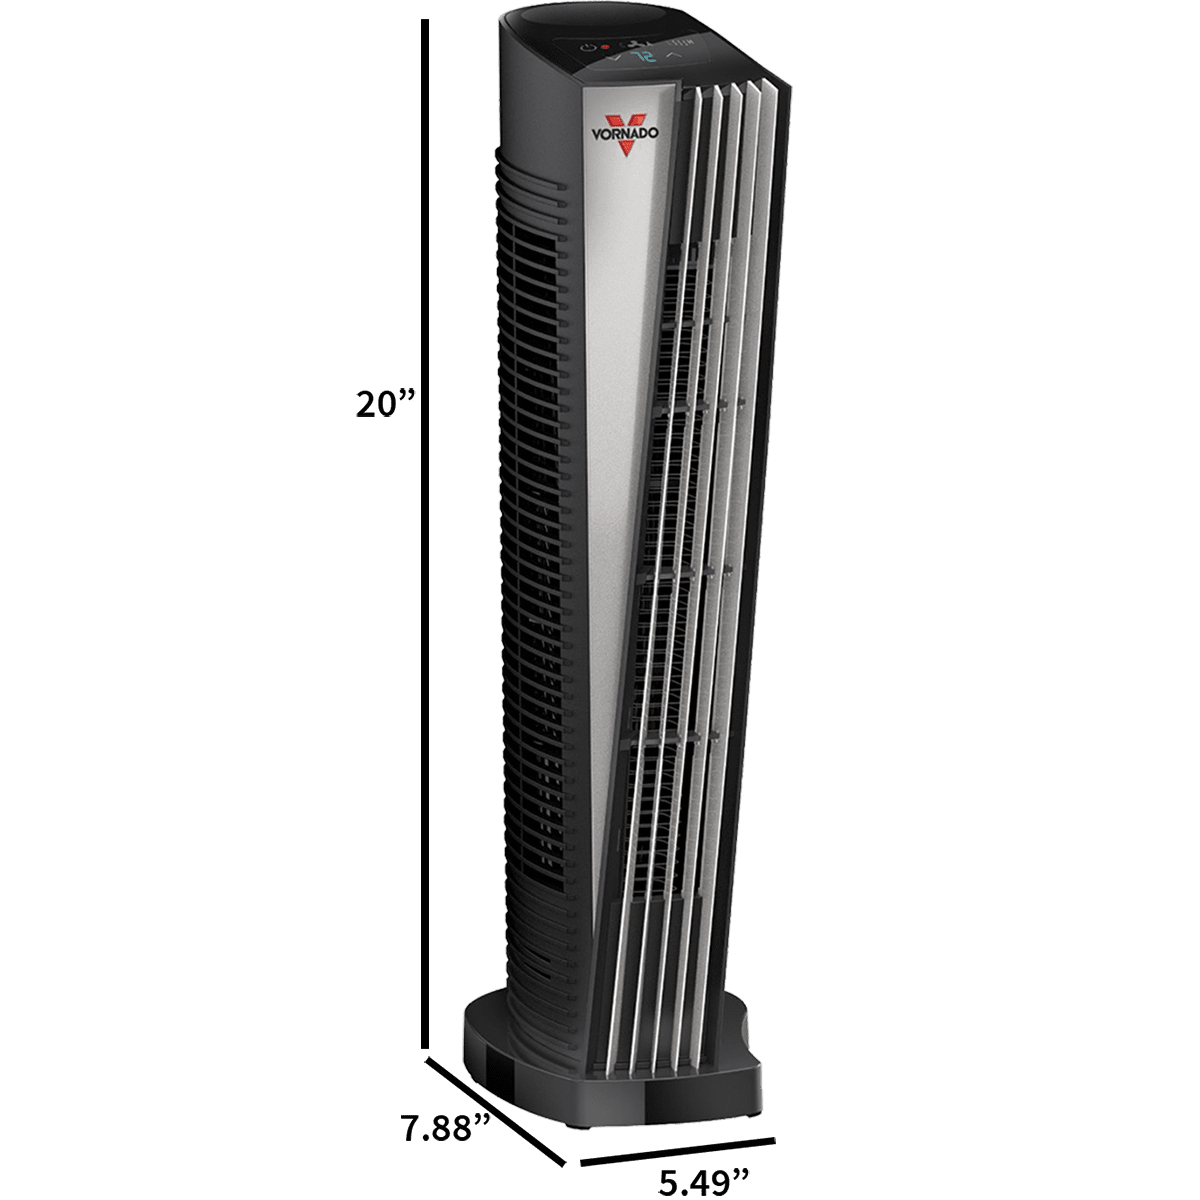 Vornado ATH1 Whole Room Tower Heater with Auto Climate Control